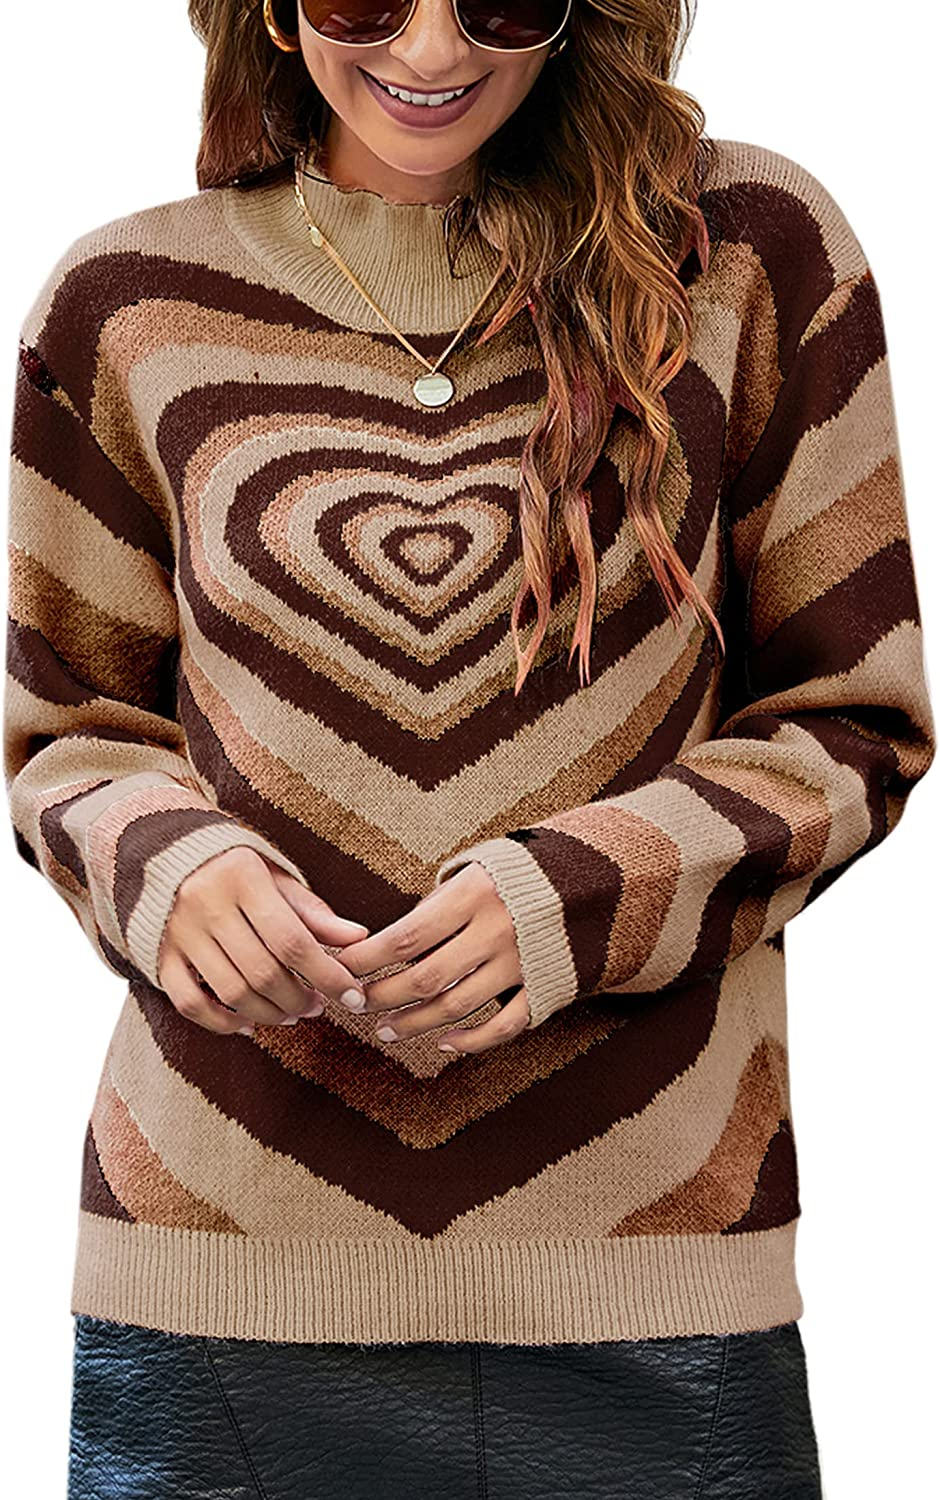 Angashion Women's Pullover Sweaters Casual Heart Printed Mock Neck Long Sleeve Color Block Knit Y2K Sweater Tops